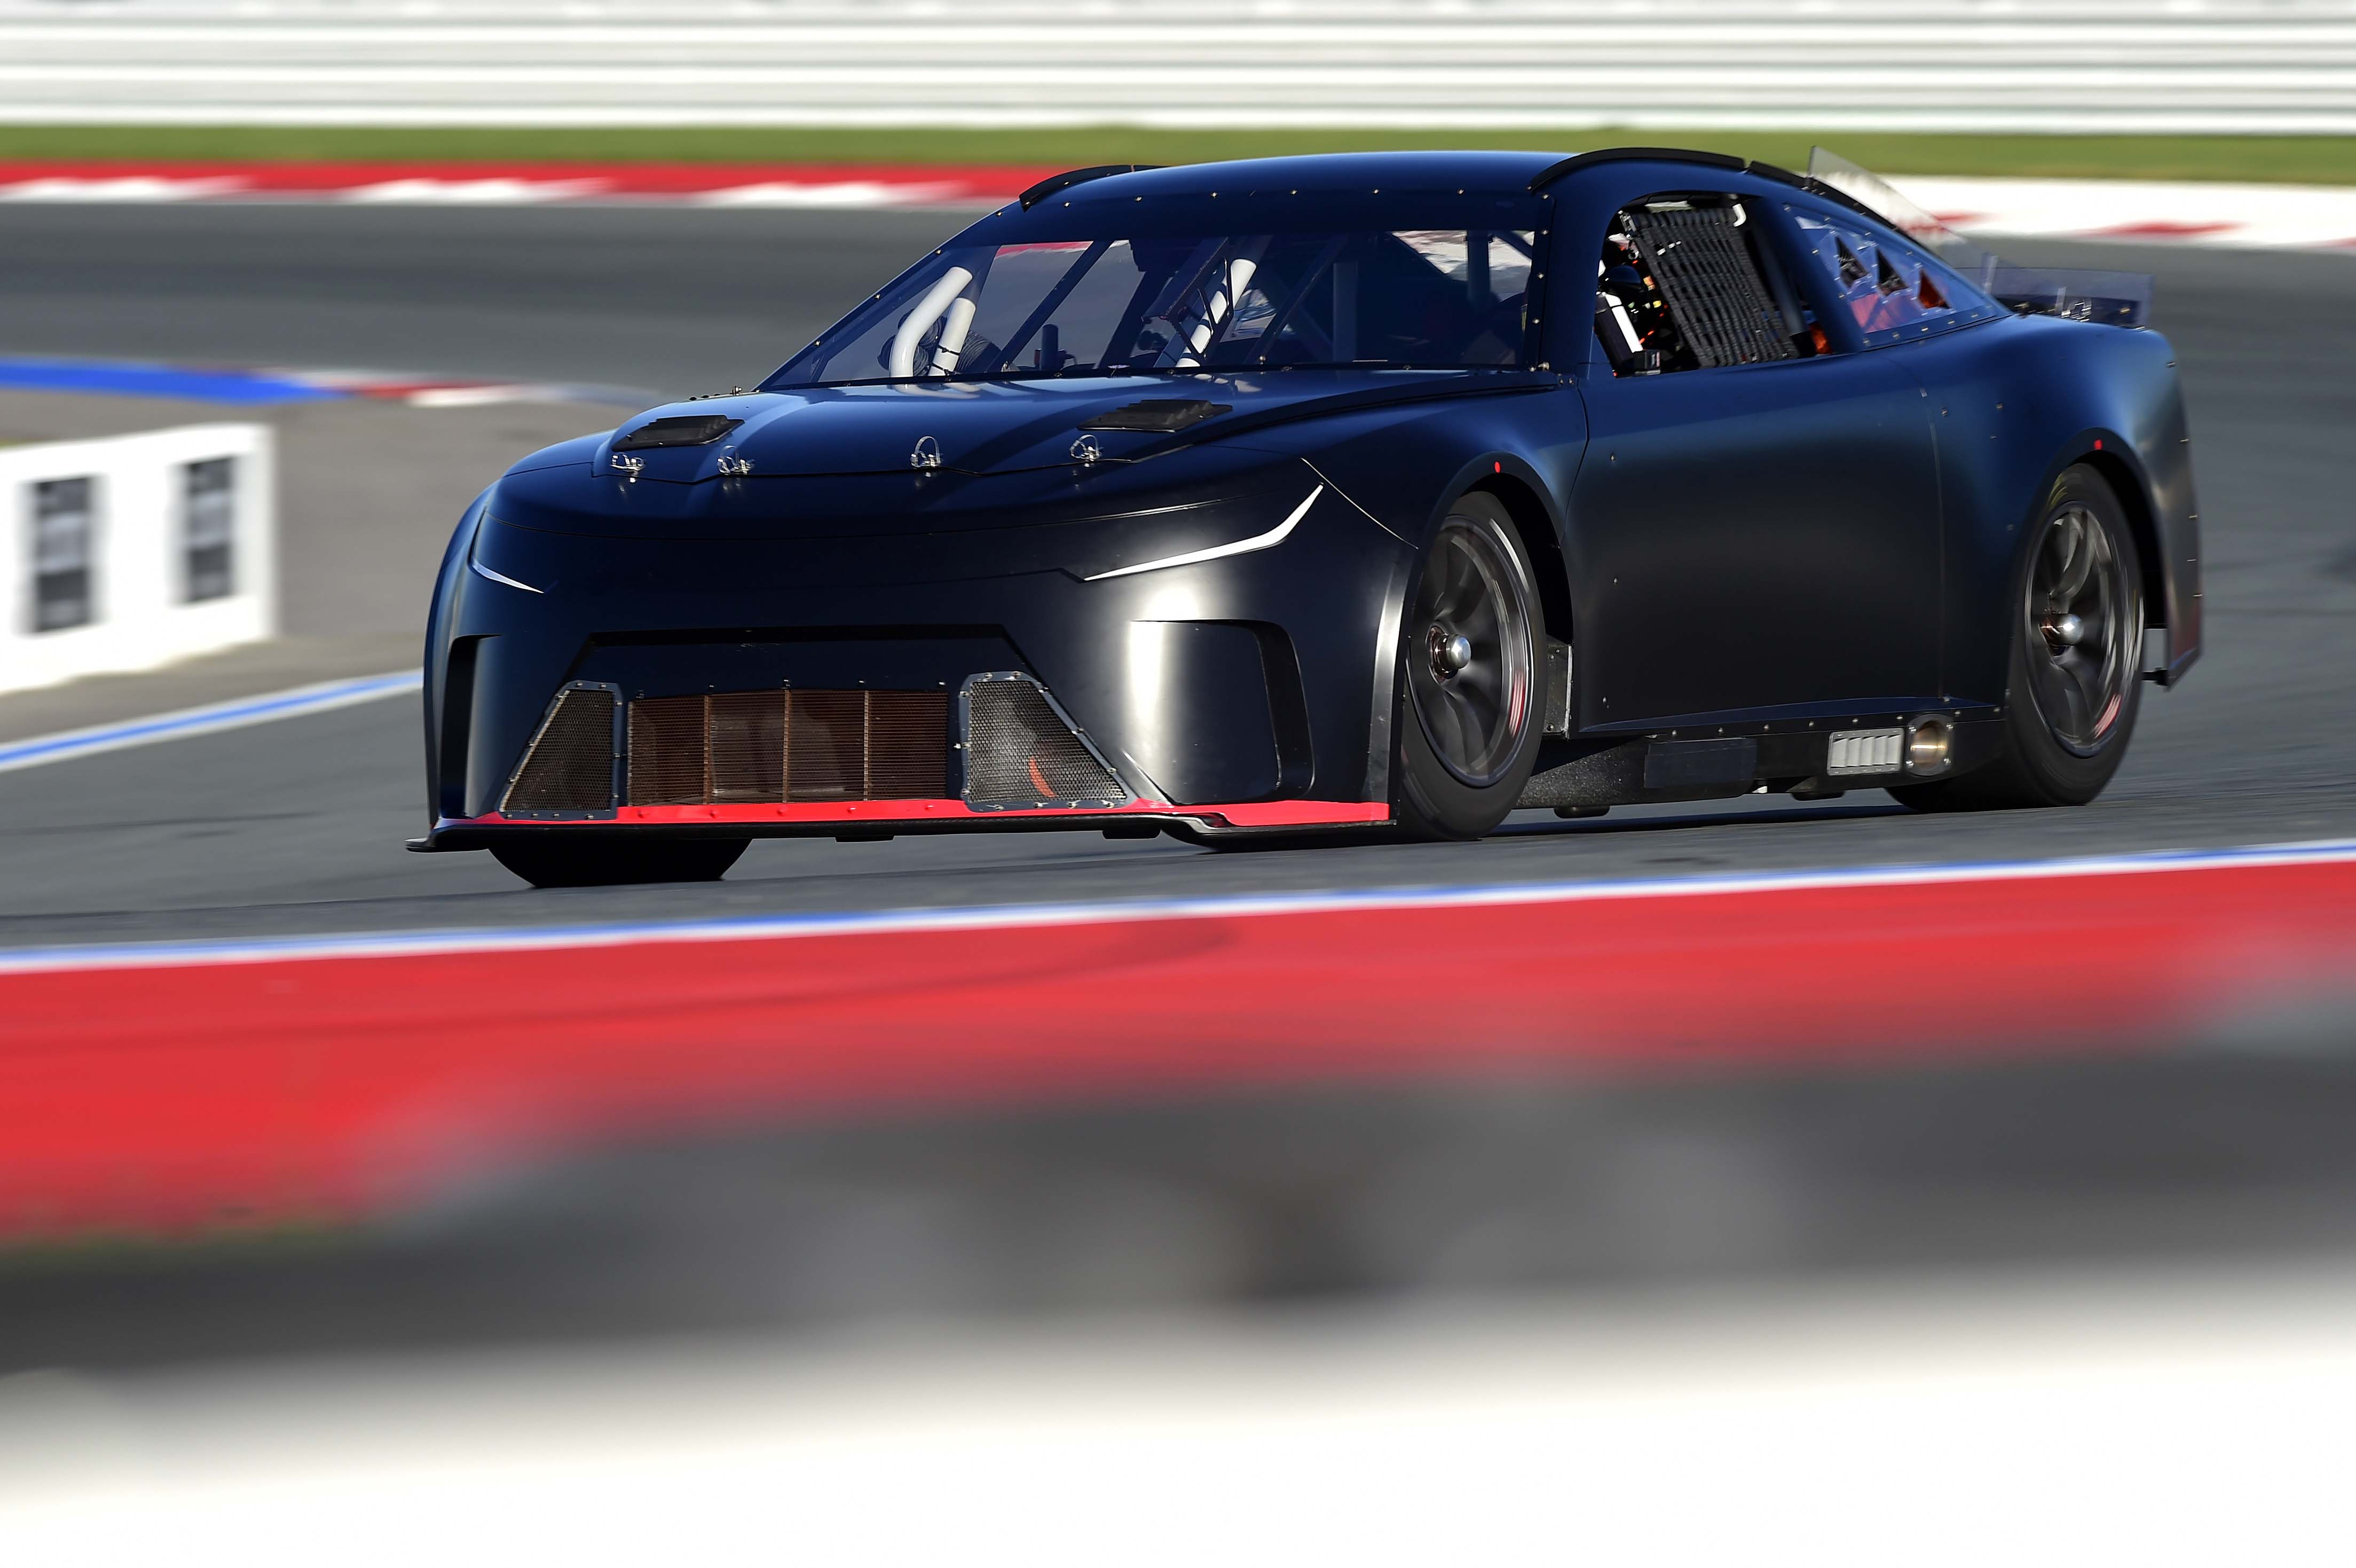 Front nose of the NASCAR Next Gen car photo - Charlotte Motor Speedway ROVAL